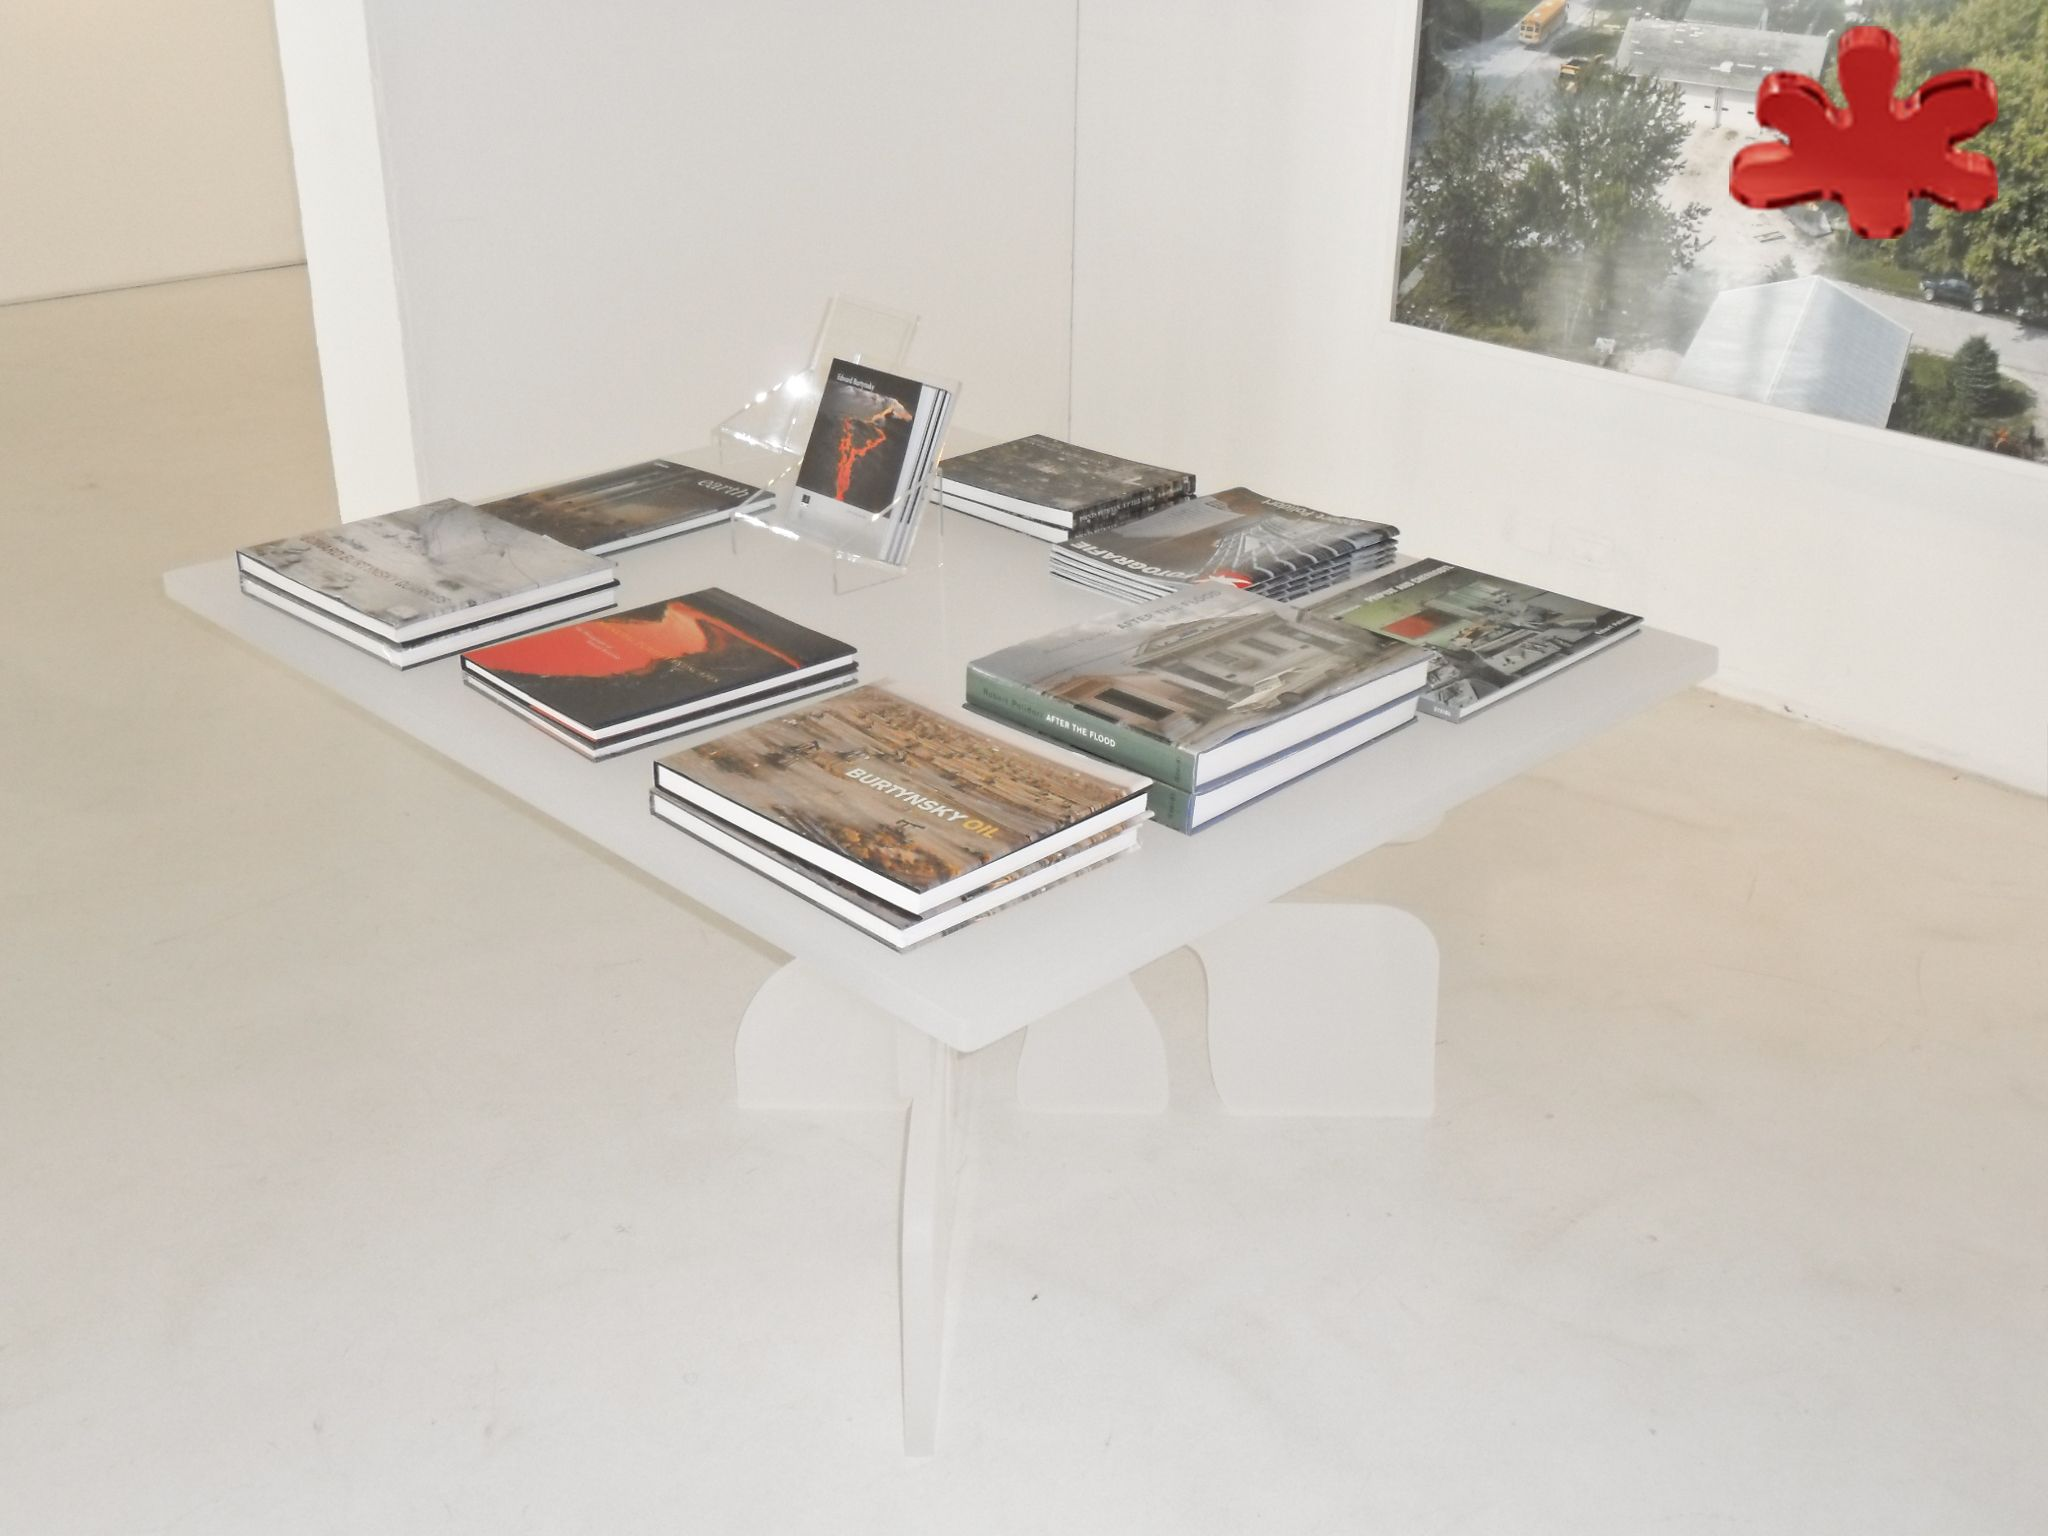 Acrylic table FIORE design Kris Ruhs for Carla Sozzani 10